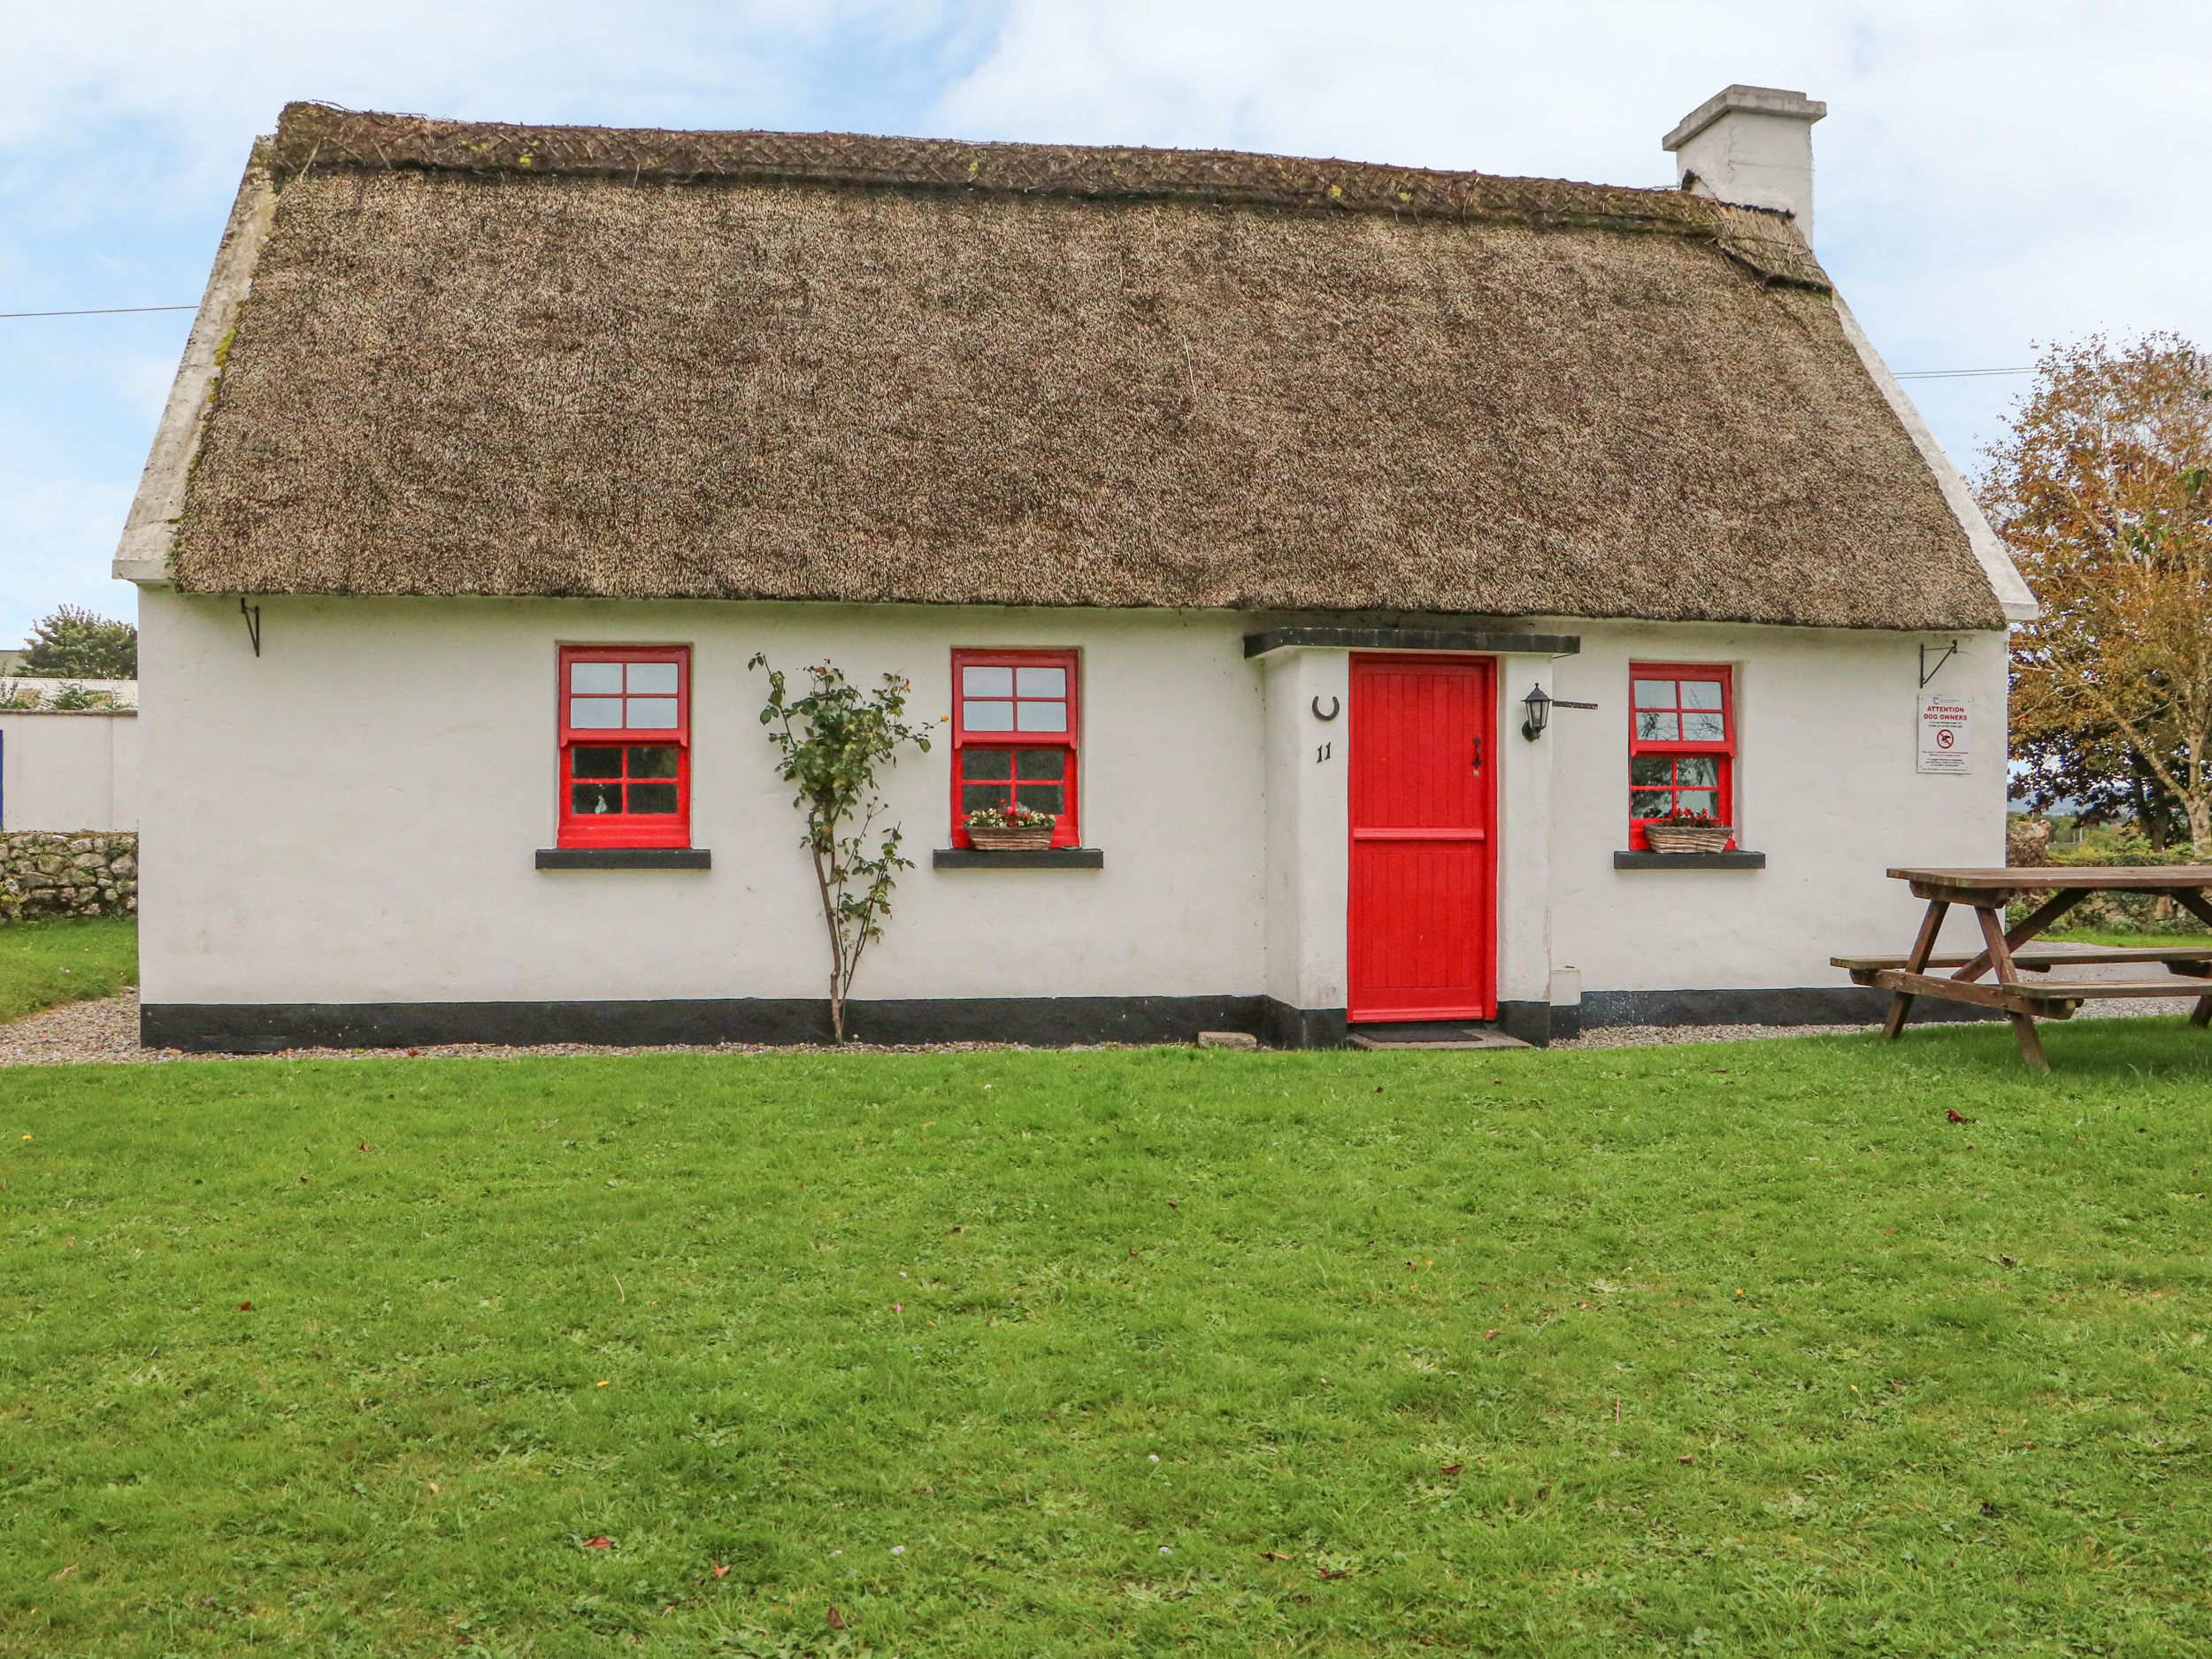 No. 11 Tipperary Thatched Cottage